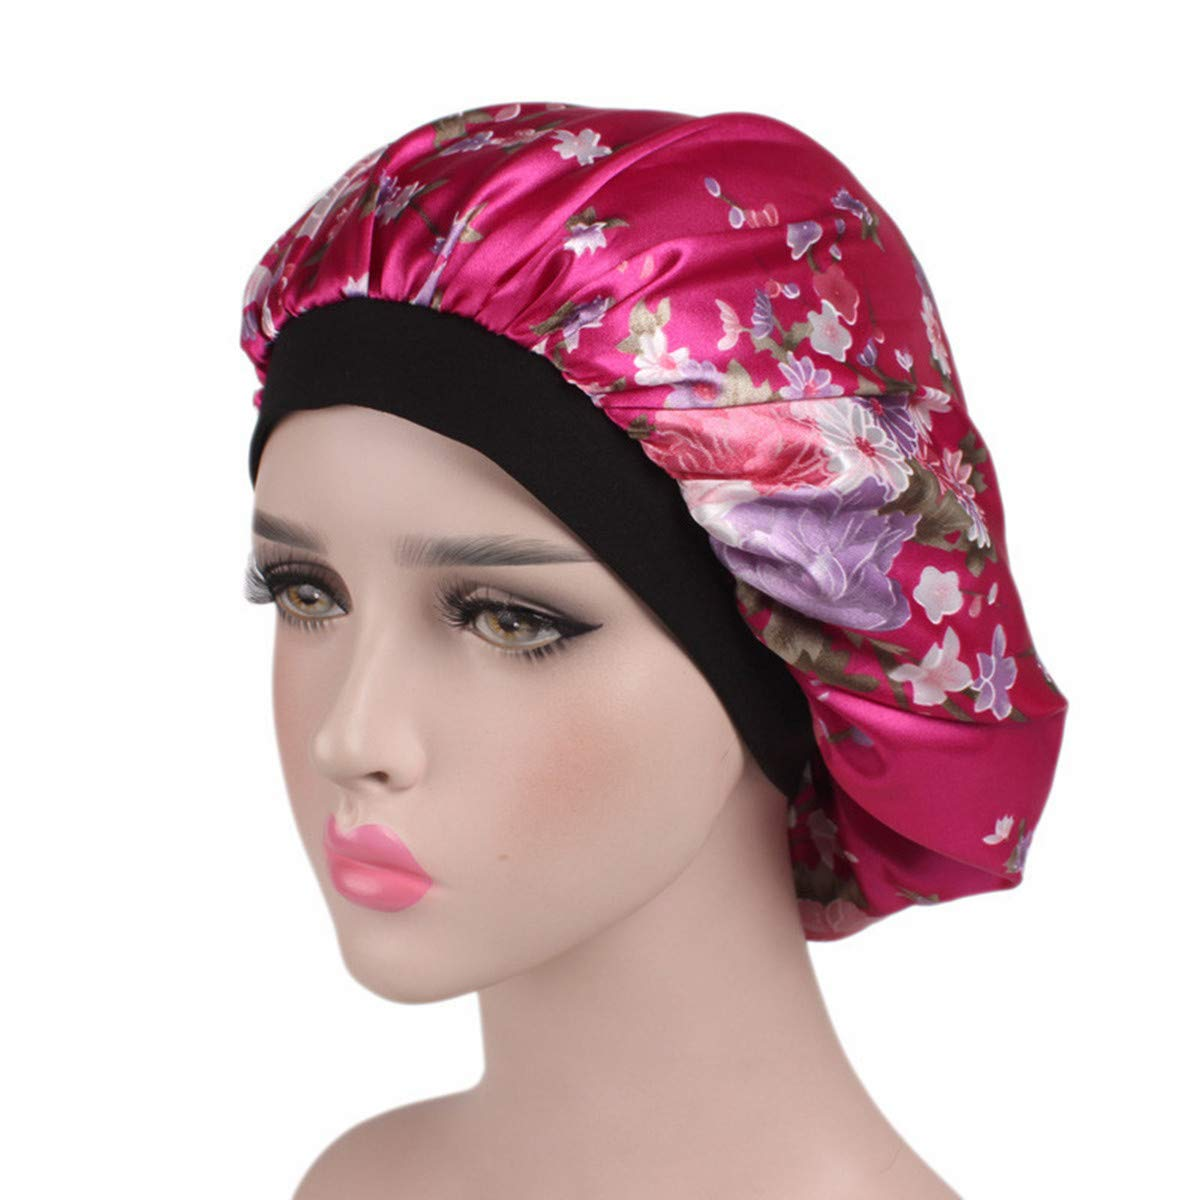 1 Pack And 2 Packs Soft Satin Sleeping Cap Salon Bonnet - Reach USA Proposition 65 Standard, 30-DAY MONEY REFUND GUARANTEED HLM-06-1